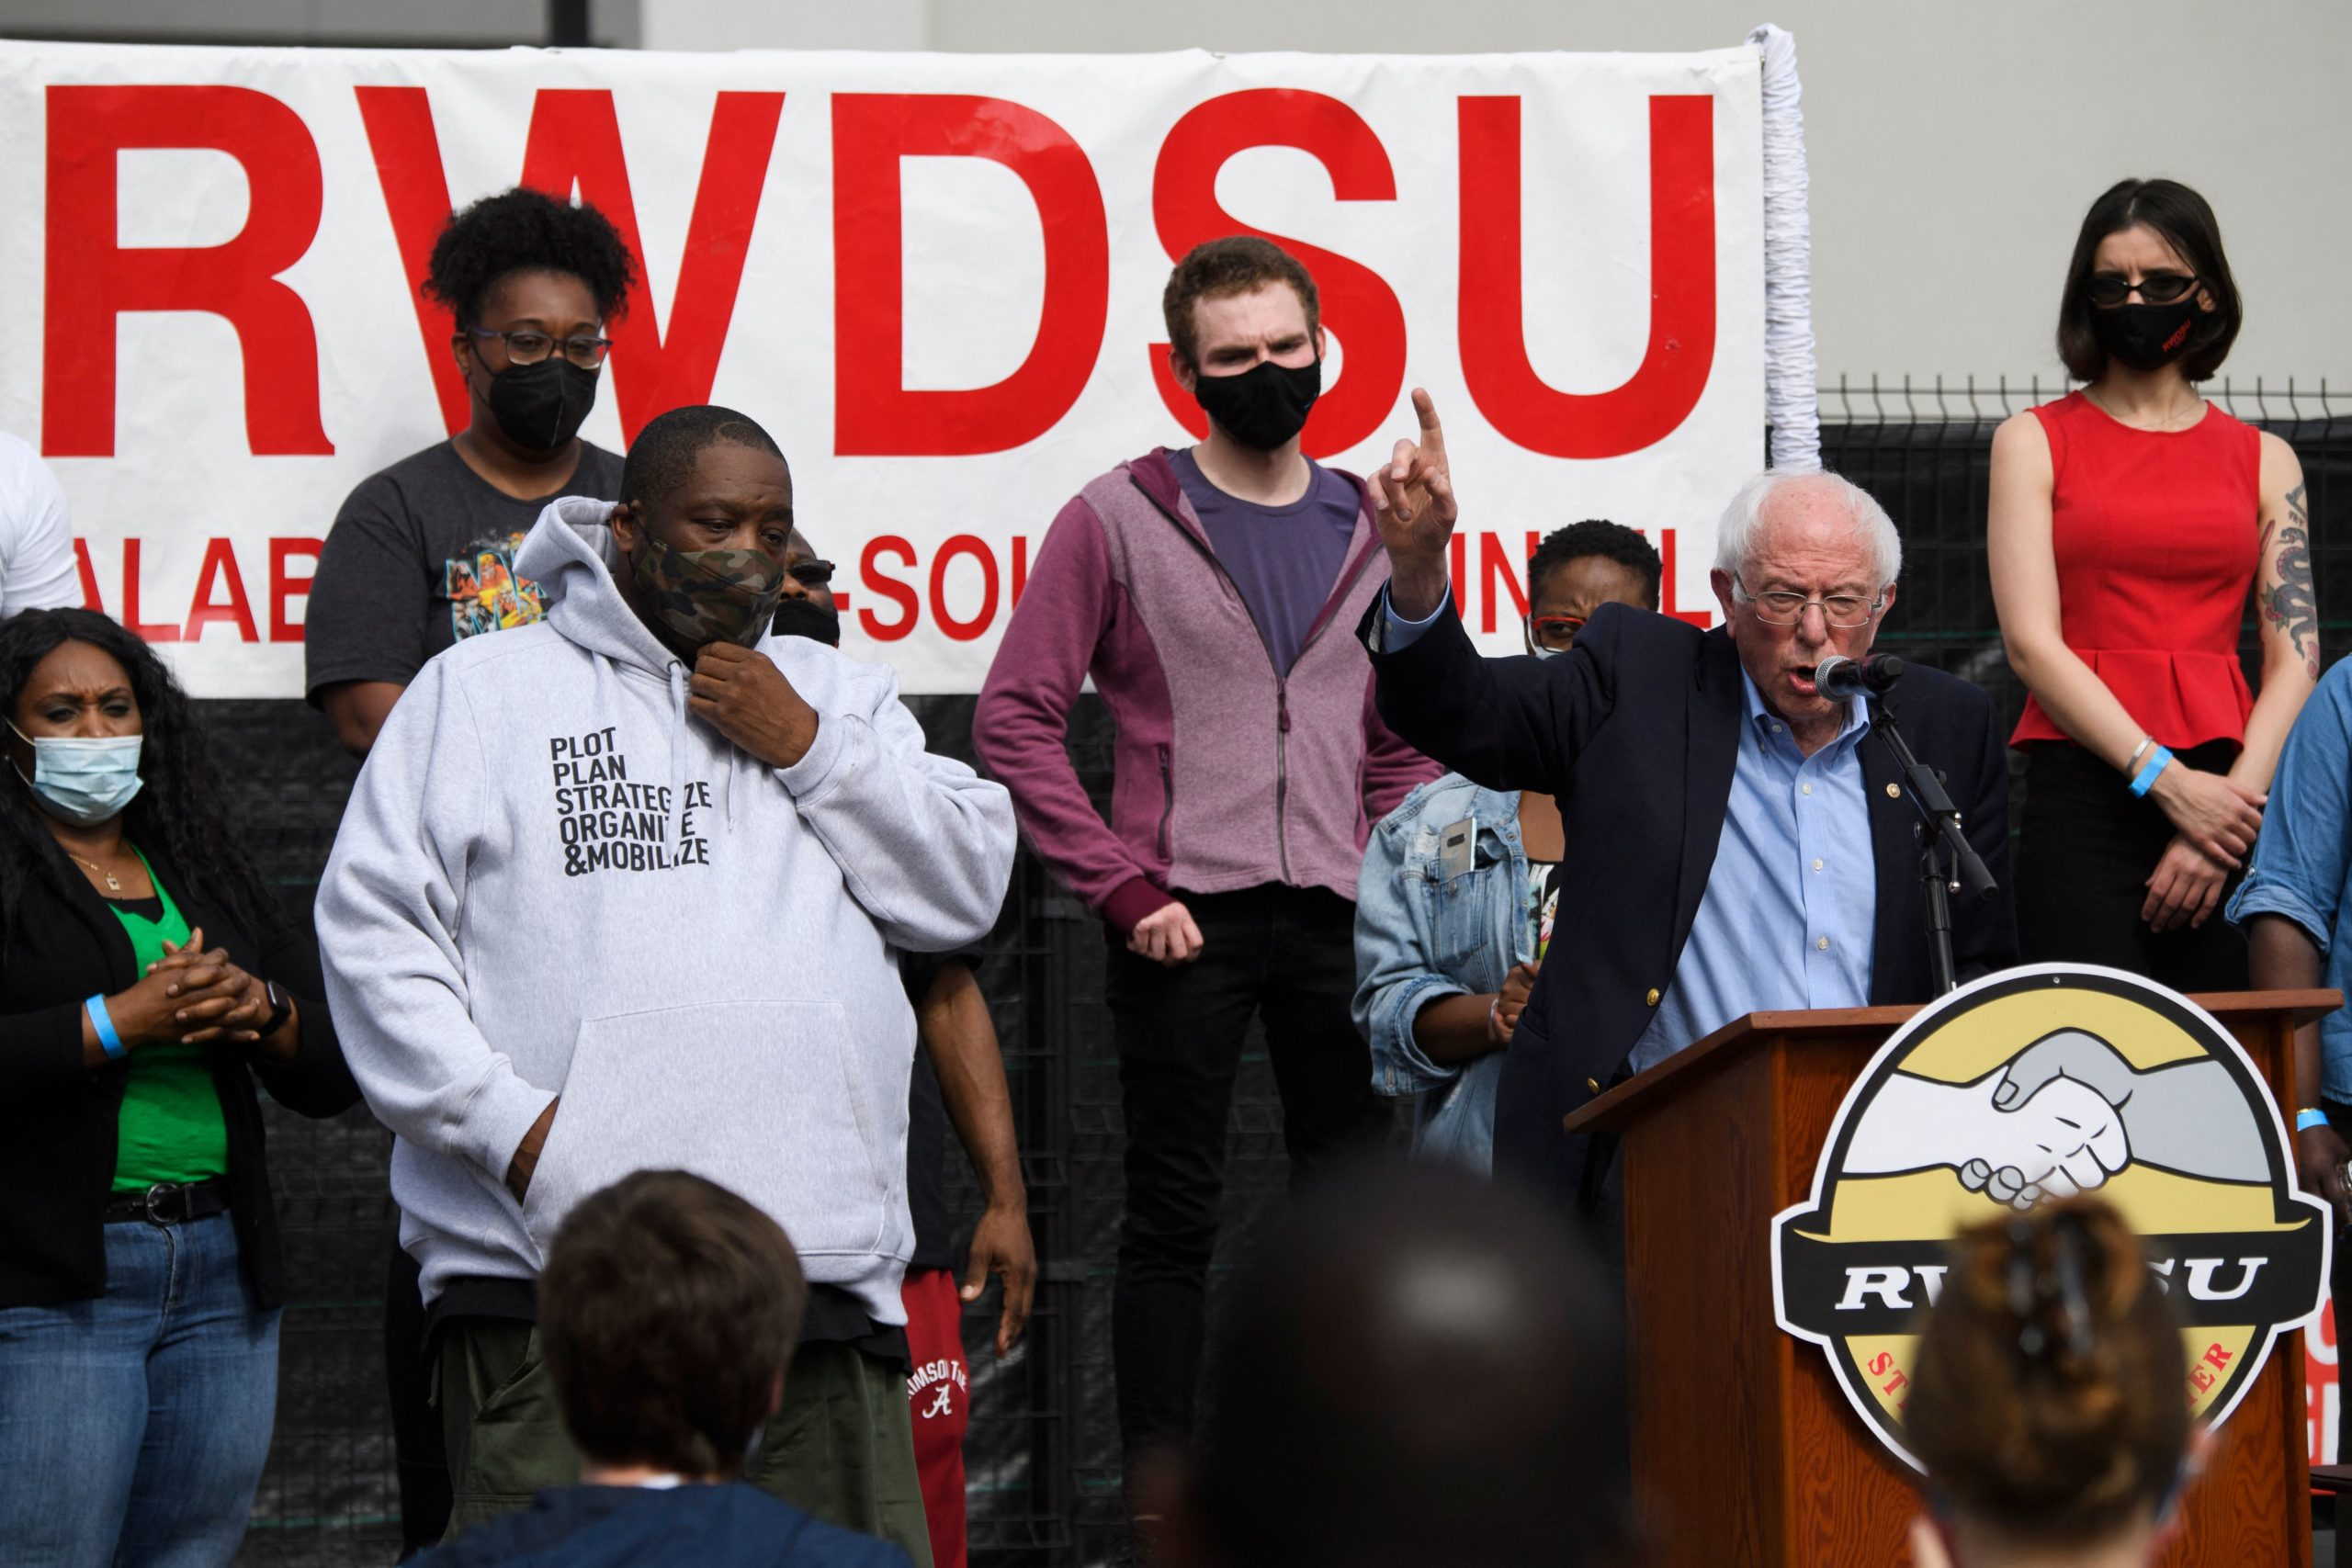 """Democratic Vermont Sen. Bernie Sanders and Rapper Michael """"Killer Mike"""" Render speak in support of the unionization effort in Alabama on March 26. (Patrick T. Fallon/AFP via Getty Images)"""